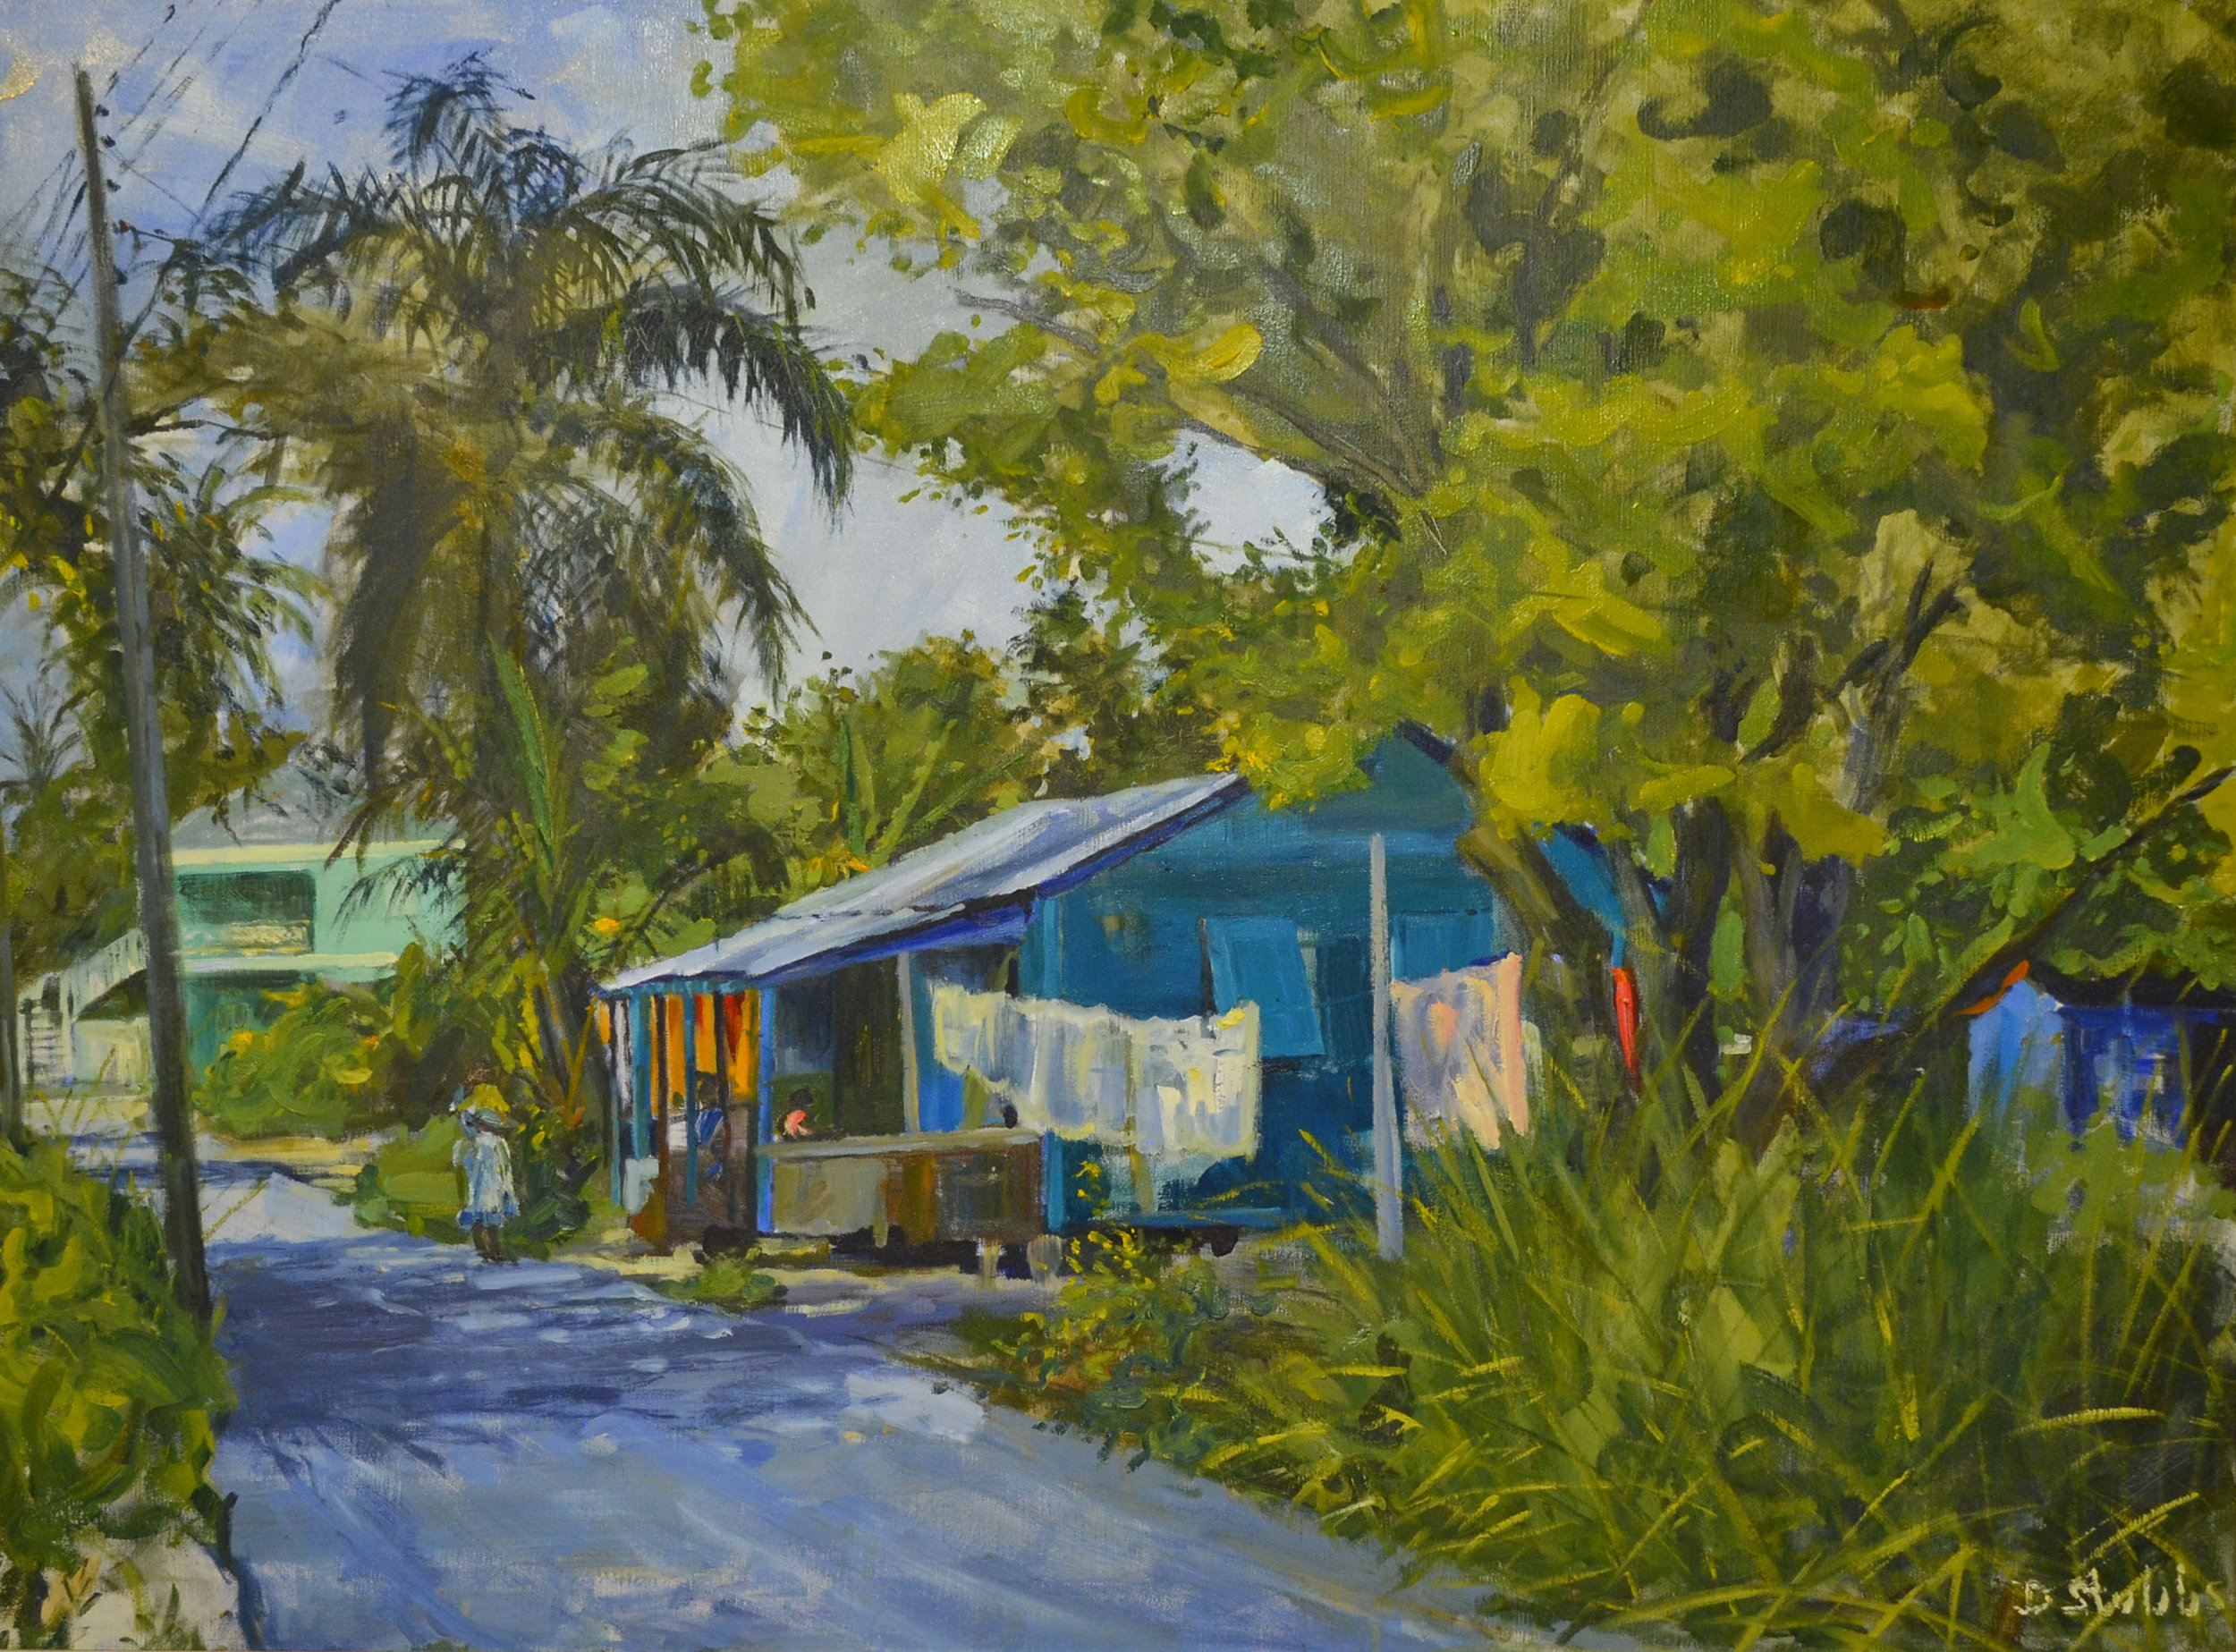 """1. """"Bain Town"""" (1984), Dorman Stubbs, oil on canvas, 30 x 40. Part of the National Collection, gifted by FINCO."""